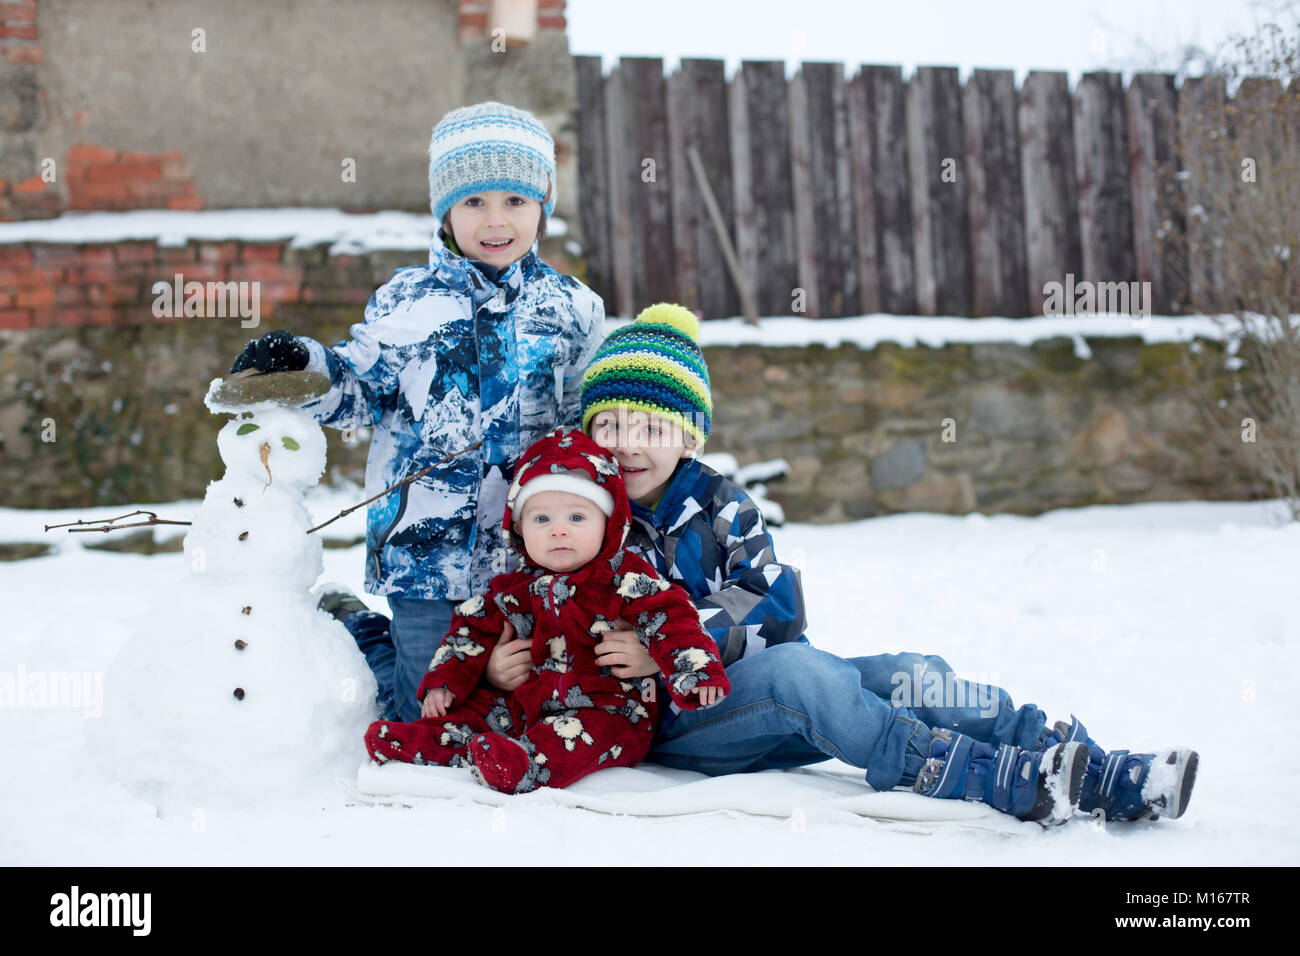 1104cf40a Little cute smiling baby boy and his two older brothers